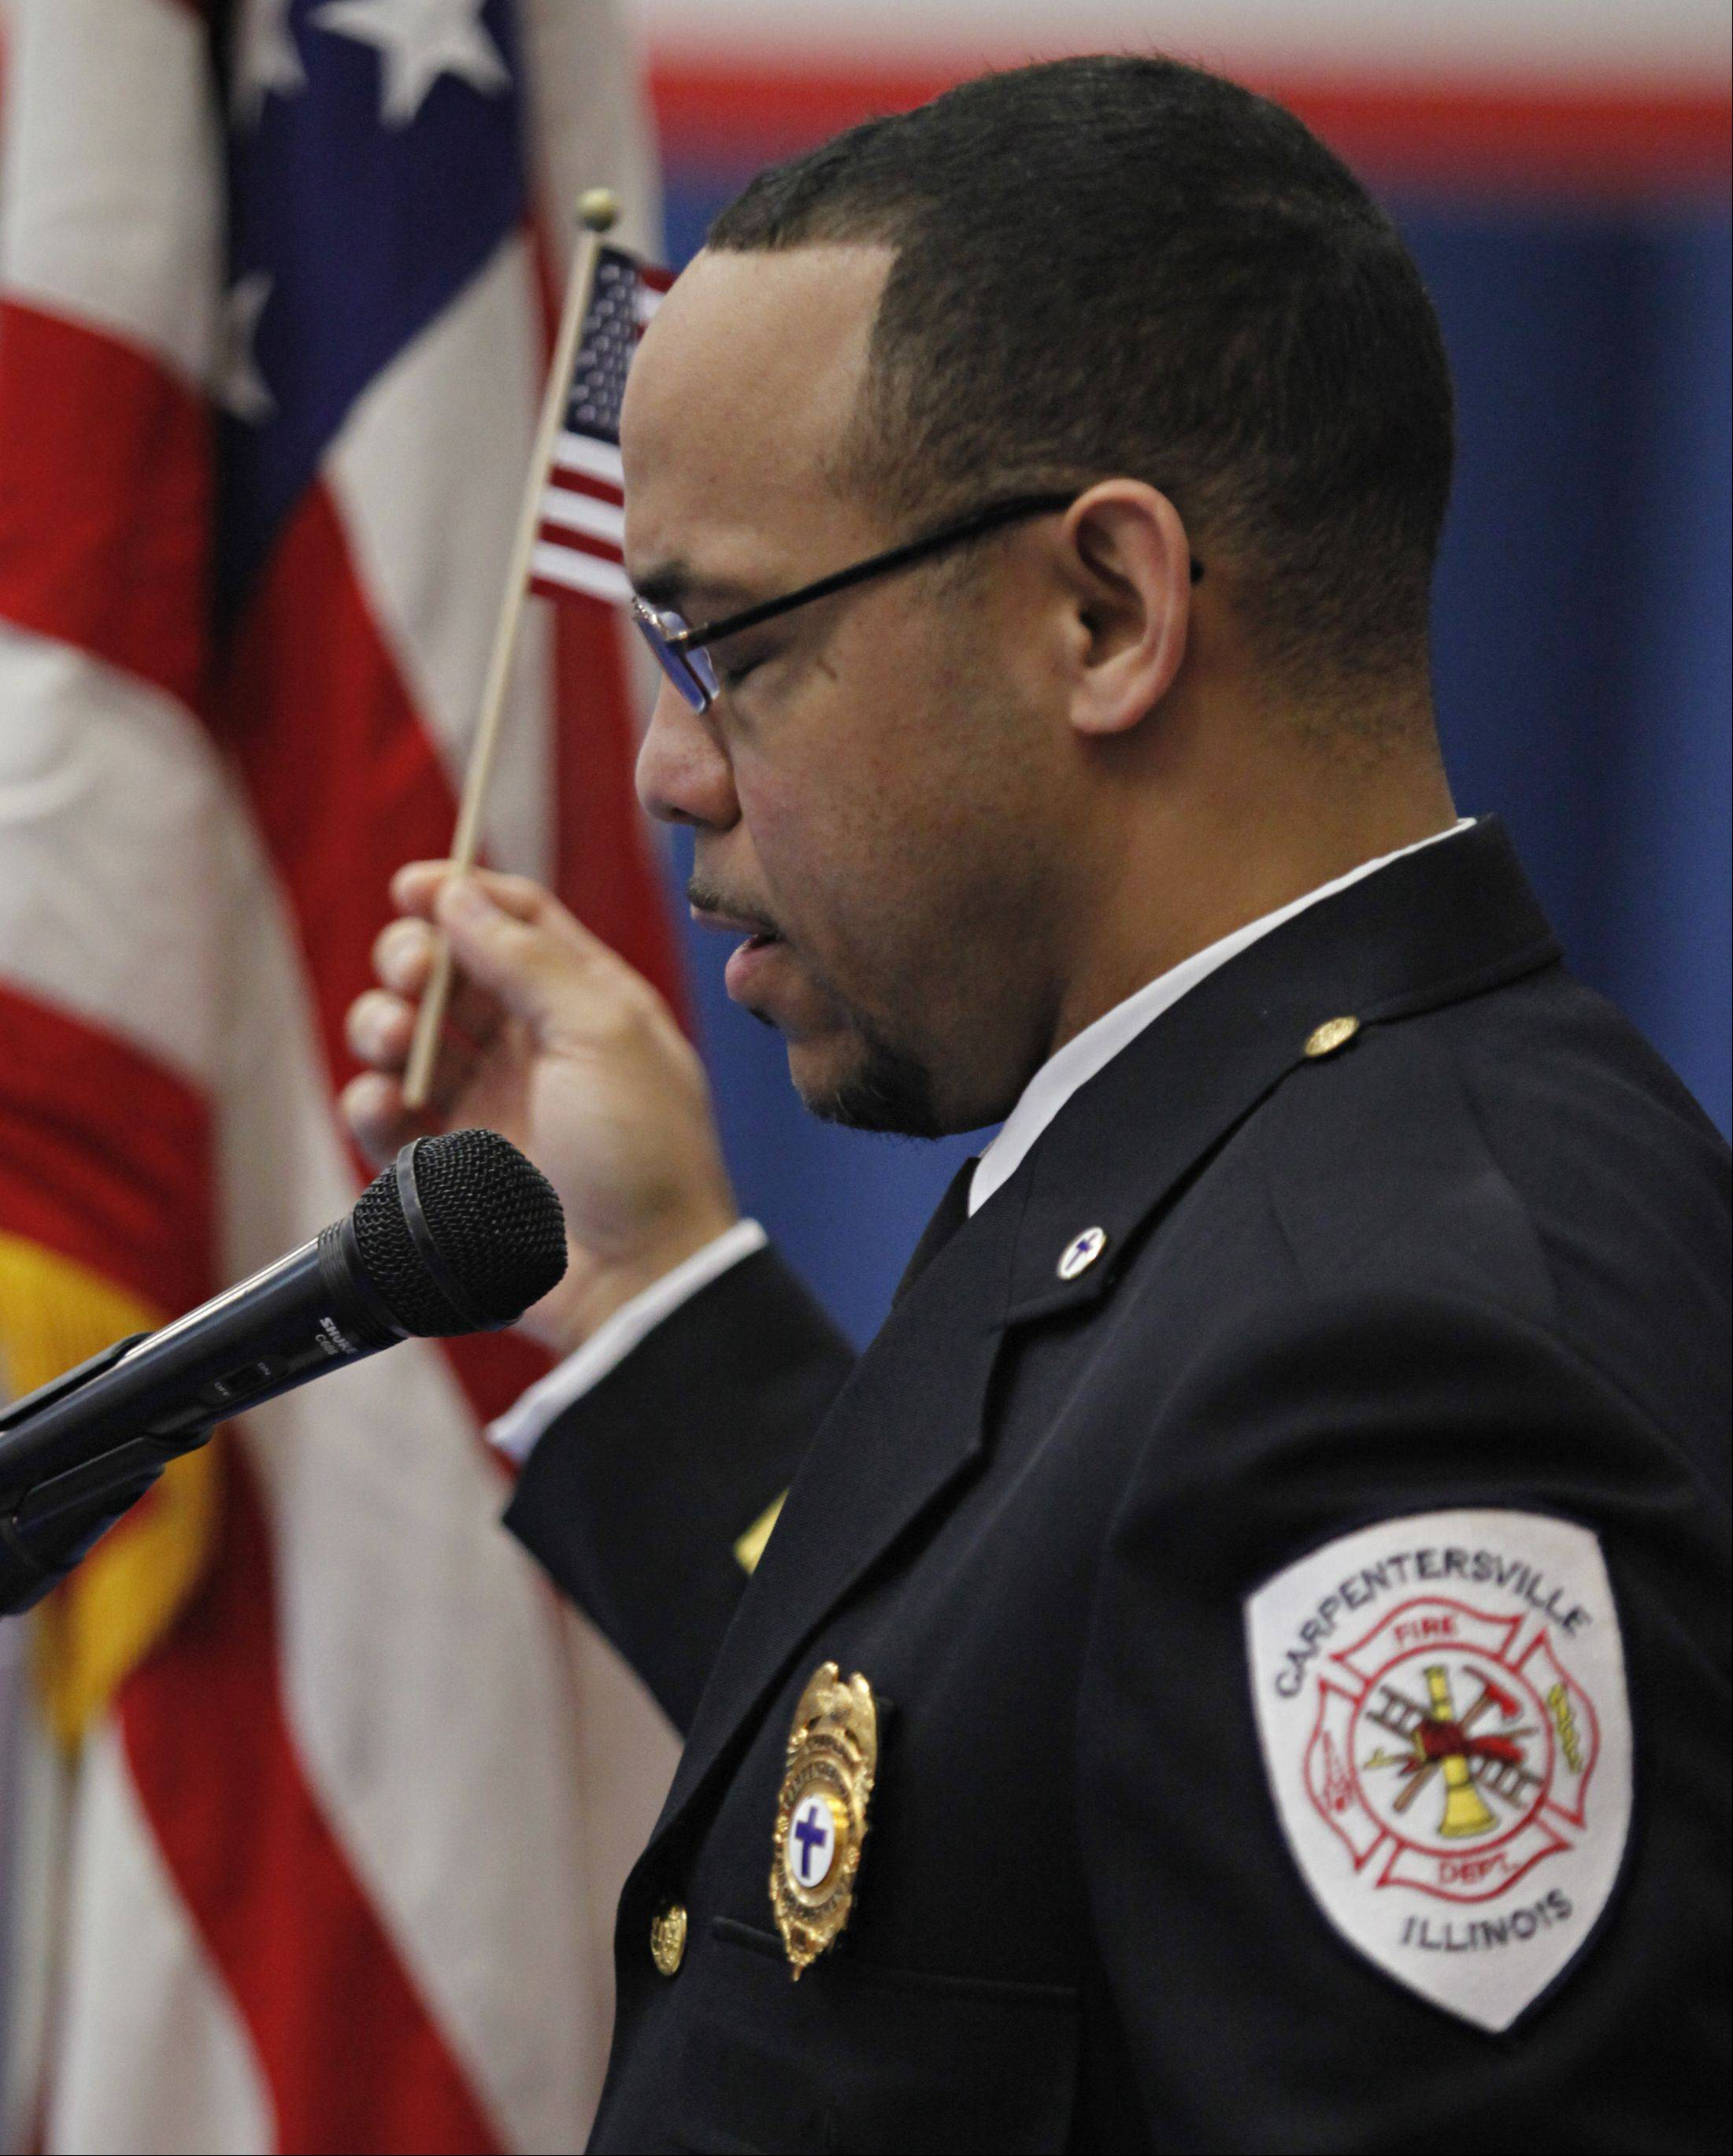 Carpentersville Fire Department chaplain Dexter Ball leans a prayer during the Veterans Day ceremony at Parkview Elementary Monday in Carpentersville.